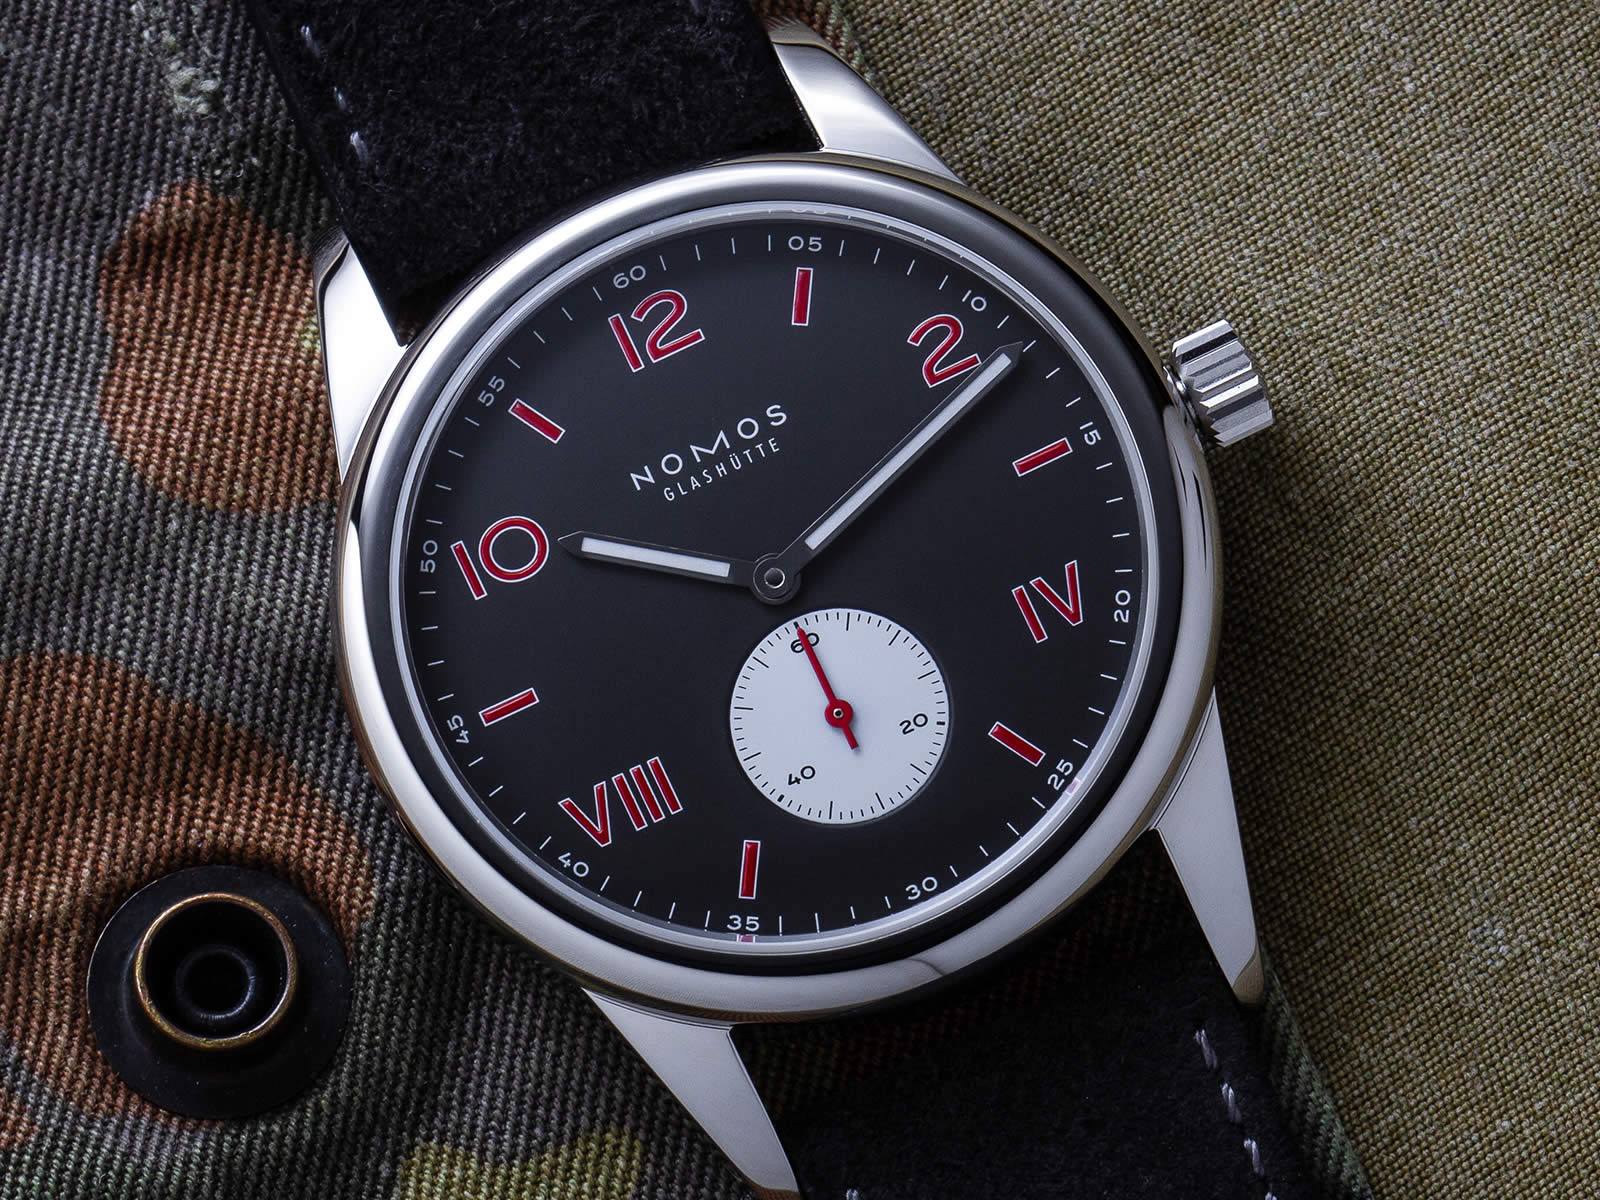 738-s1-nomos-club-campus-amsterdam-limited-edition-by-ace-jewelers-5-.jpg